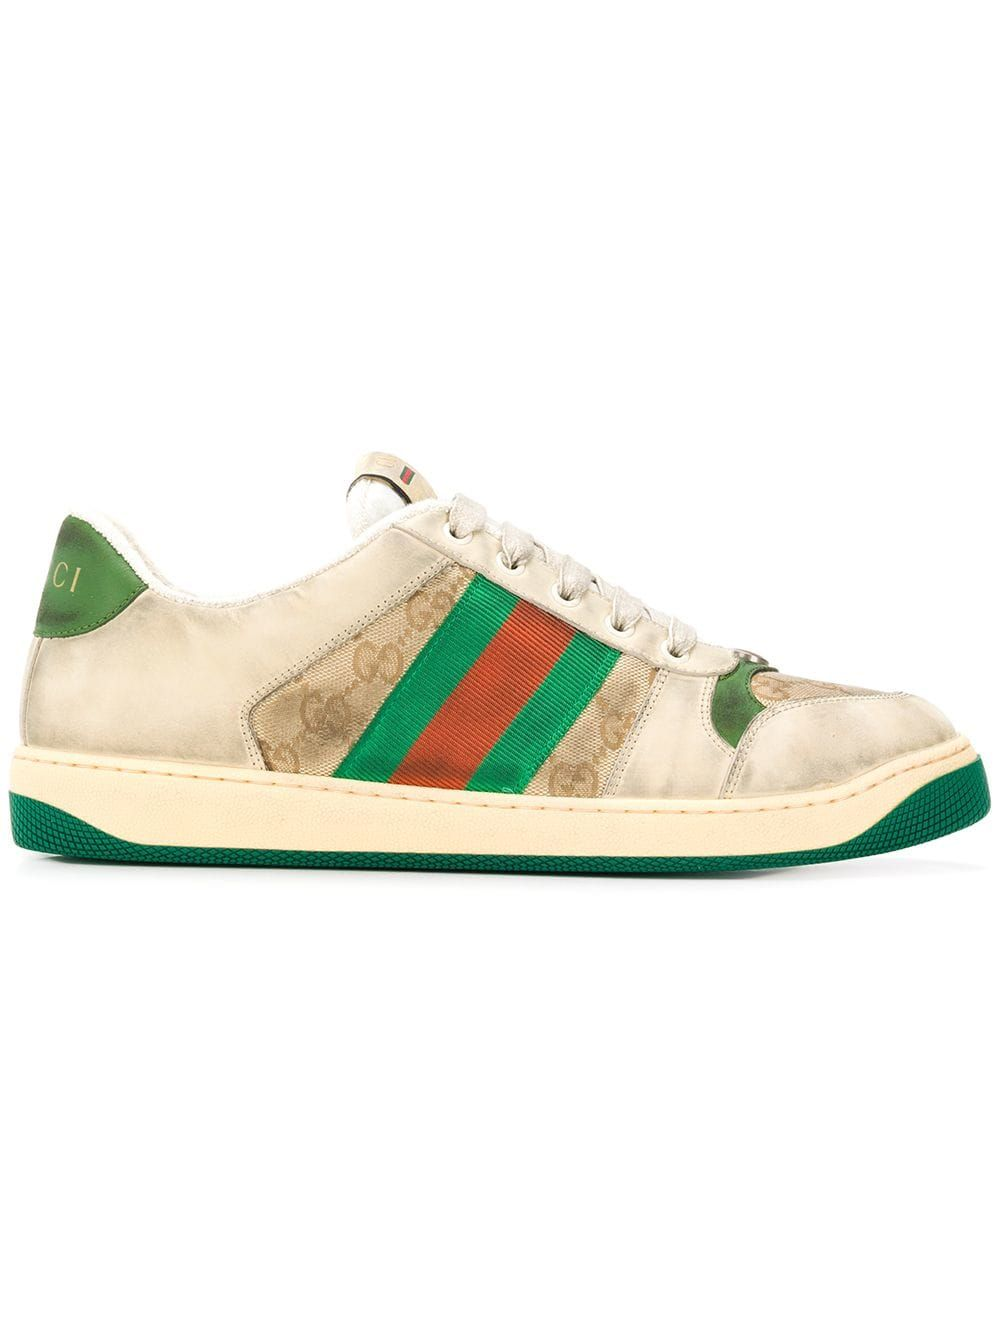 f5aaed3f251 GUCCI GUCCI SCREENER GG SNEAKER - NEUTRALS.  gucci  shoes